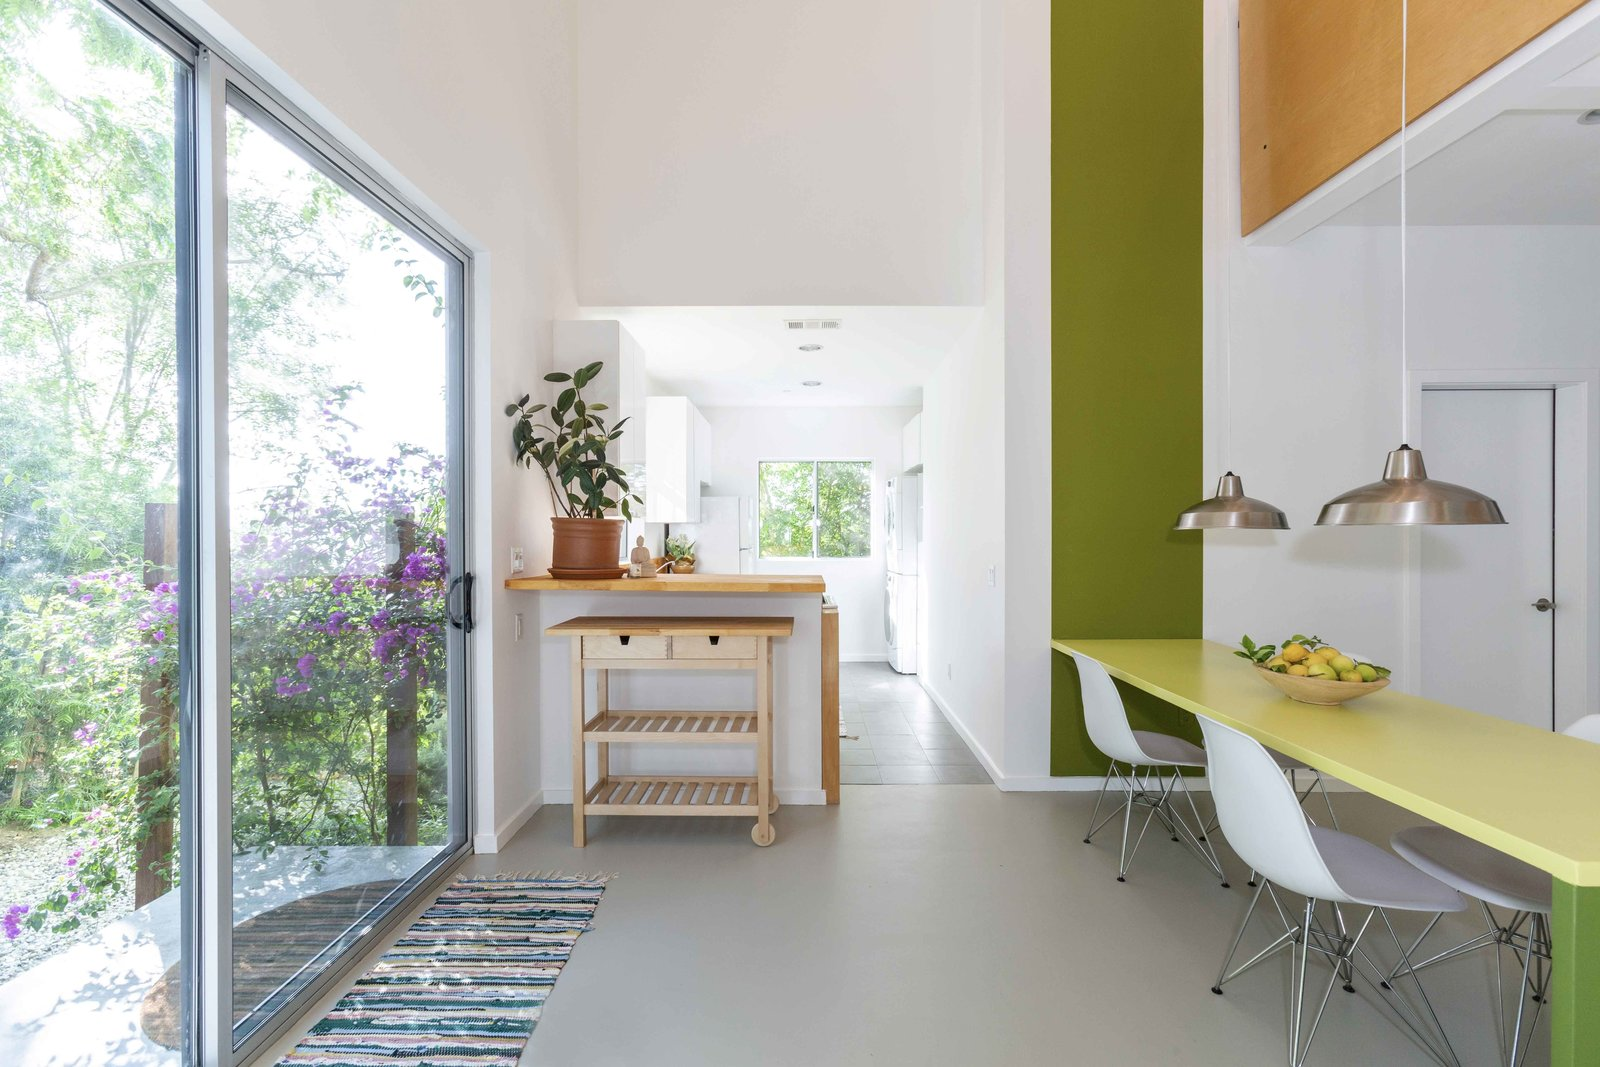 The dining area also features a built-in table. Along the opposite wall, a sliding glass door provides access to the garden.  Photo 18 of 22 in A Lush Los Angeles Compound With a Shingle-Clad Cottage and Lime-Green Home Seeks $2M